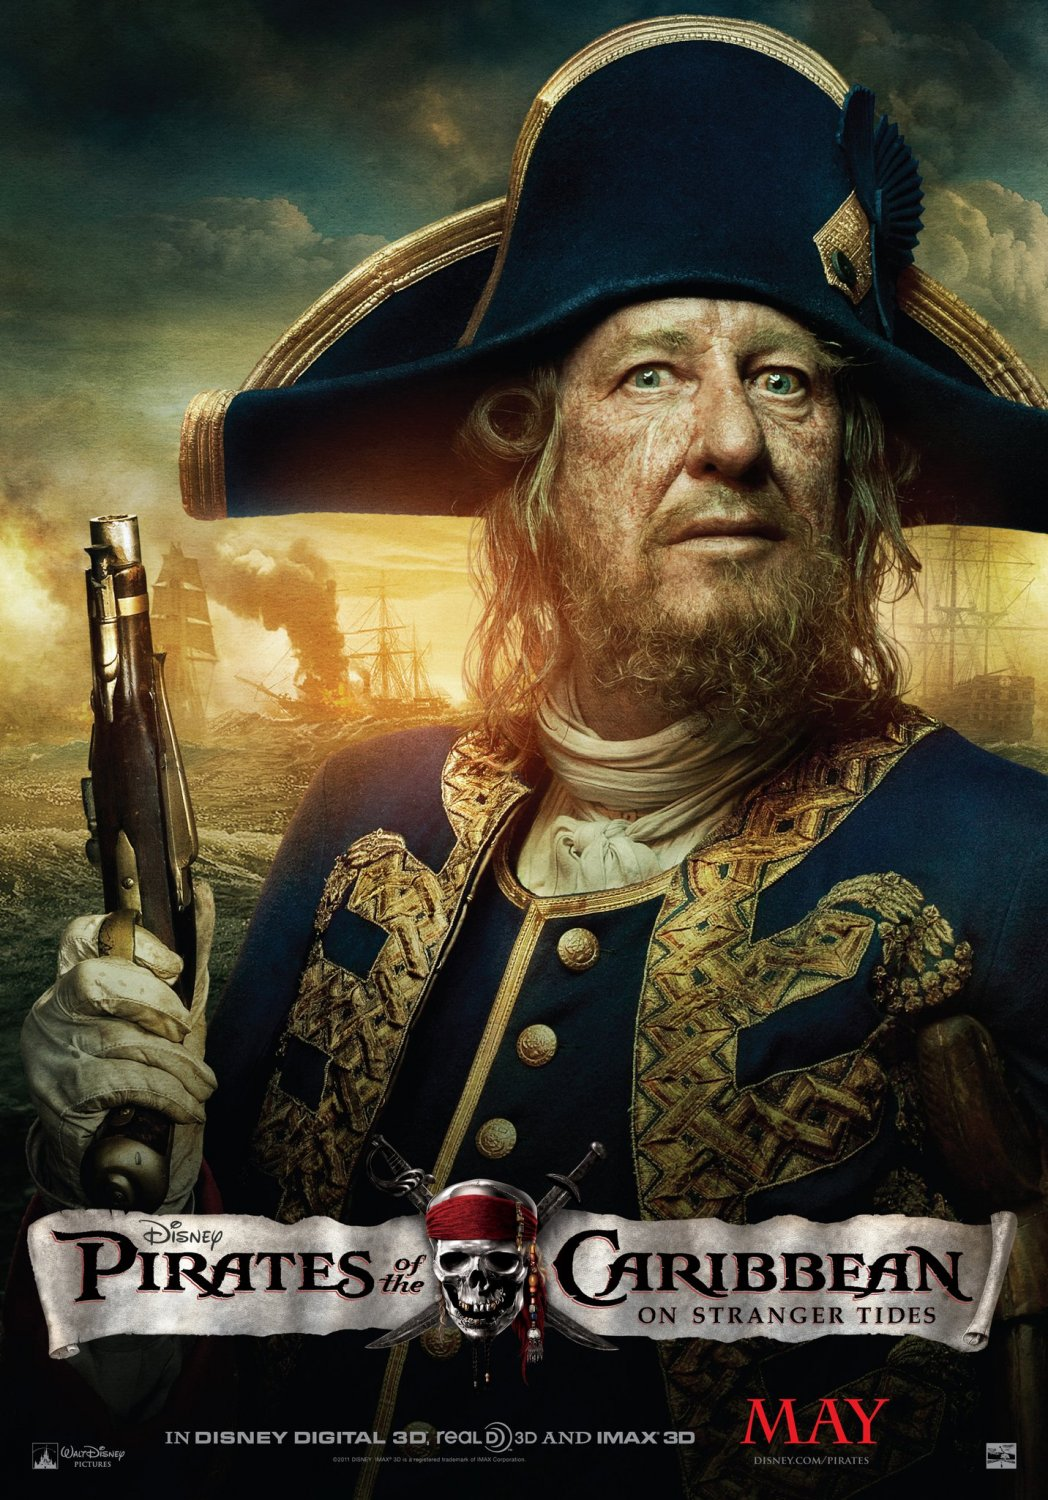 What do you think of those posters of pirates of the caribbean 4?